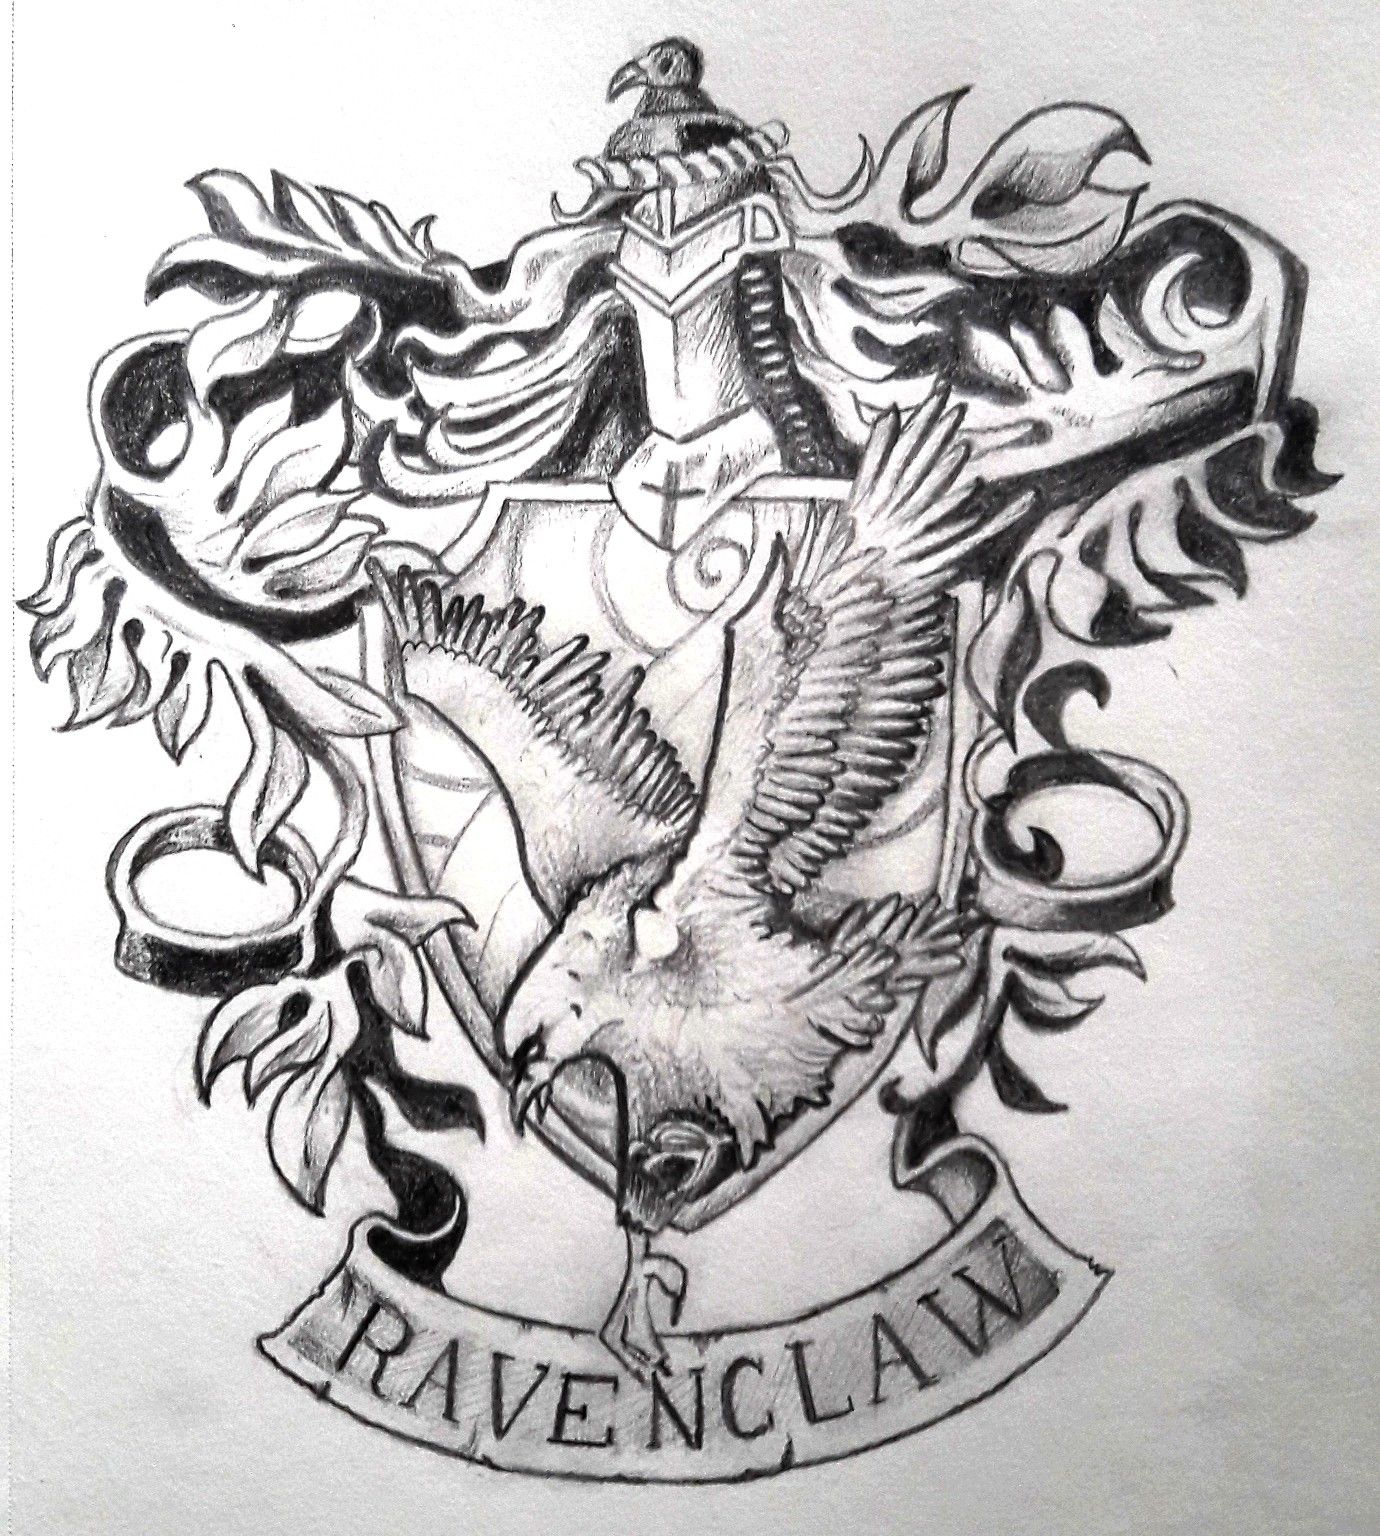 Pencil Drawing Of The Ravenclaw House Emblem Based On This Pin Fr